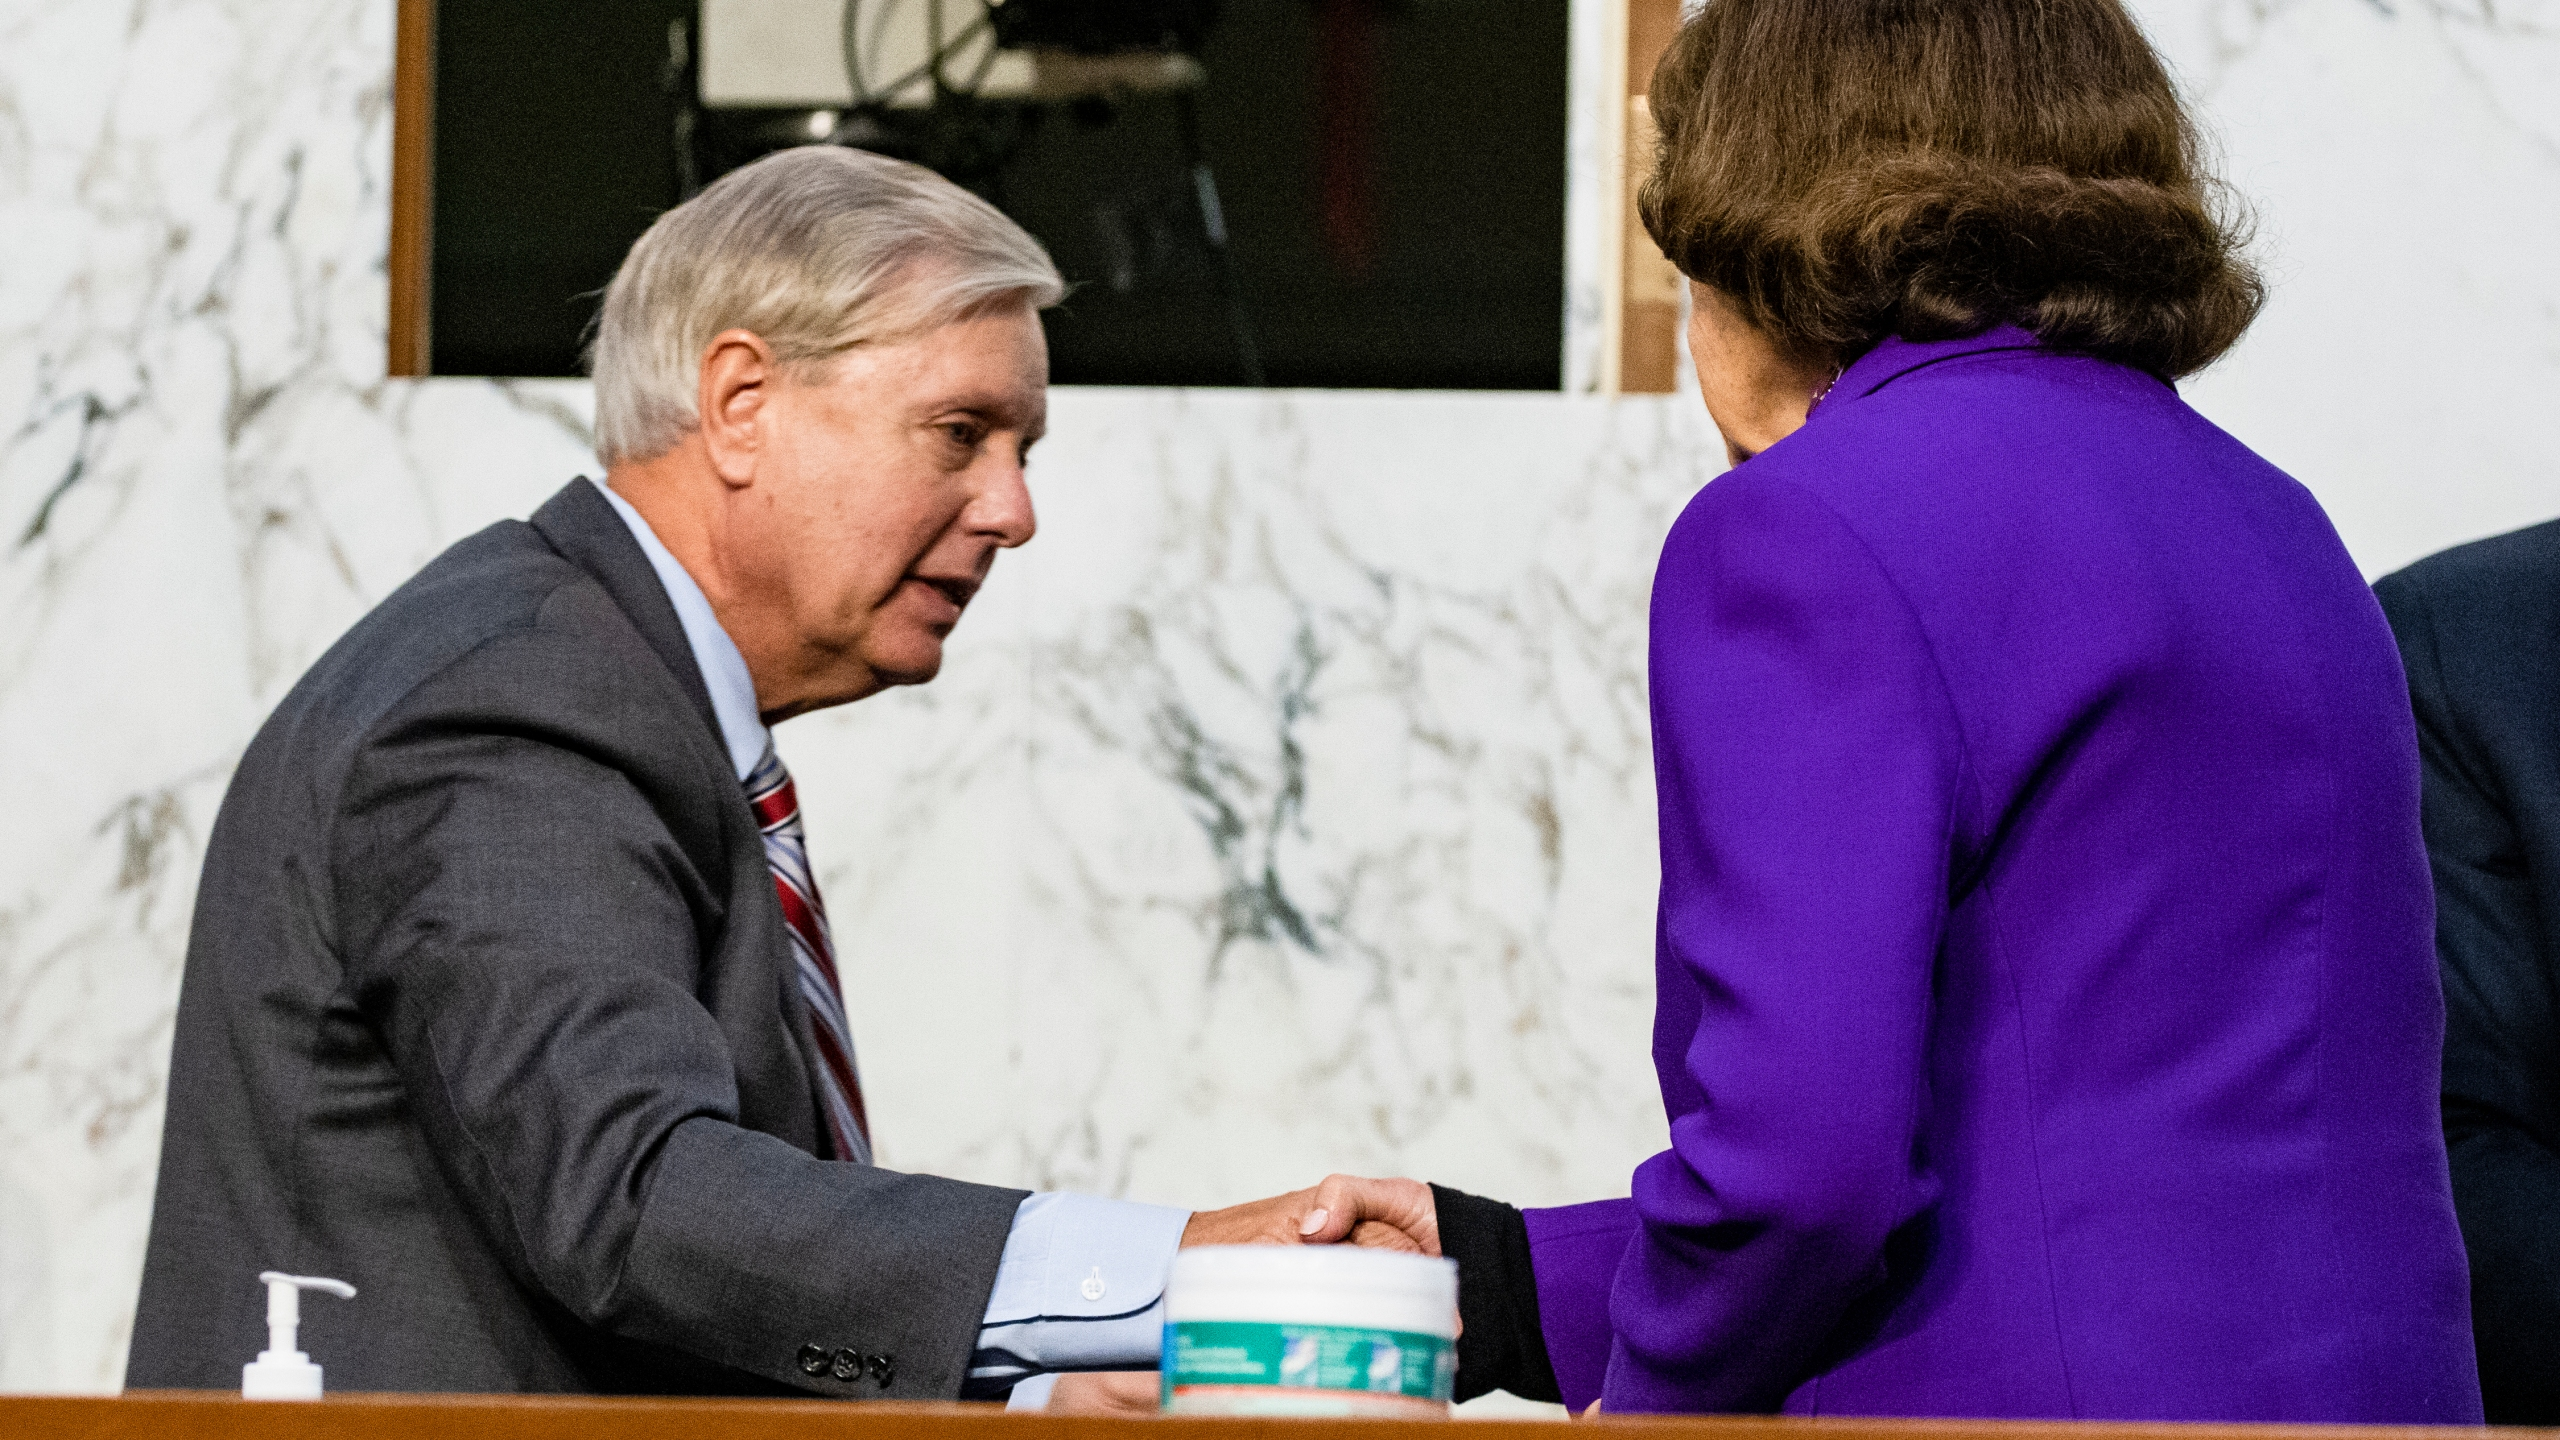 sen feinstein s embrace with sen graham prompts calls for her ouster from democratic leadership ktla https ktla com news politics sen feinsteins embrace with sen graham prompt calls for her ouster from democratic leadership